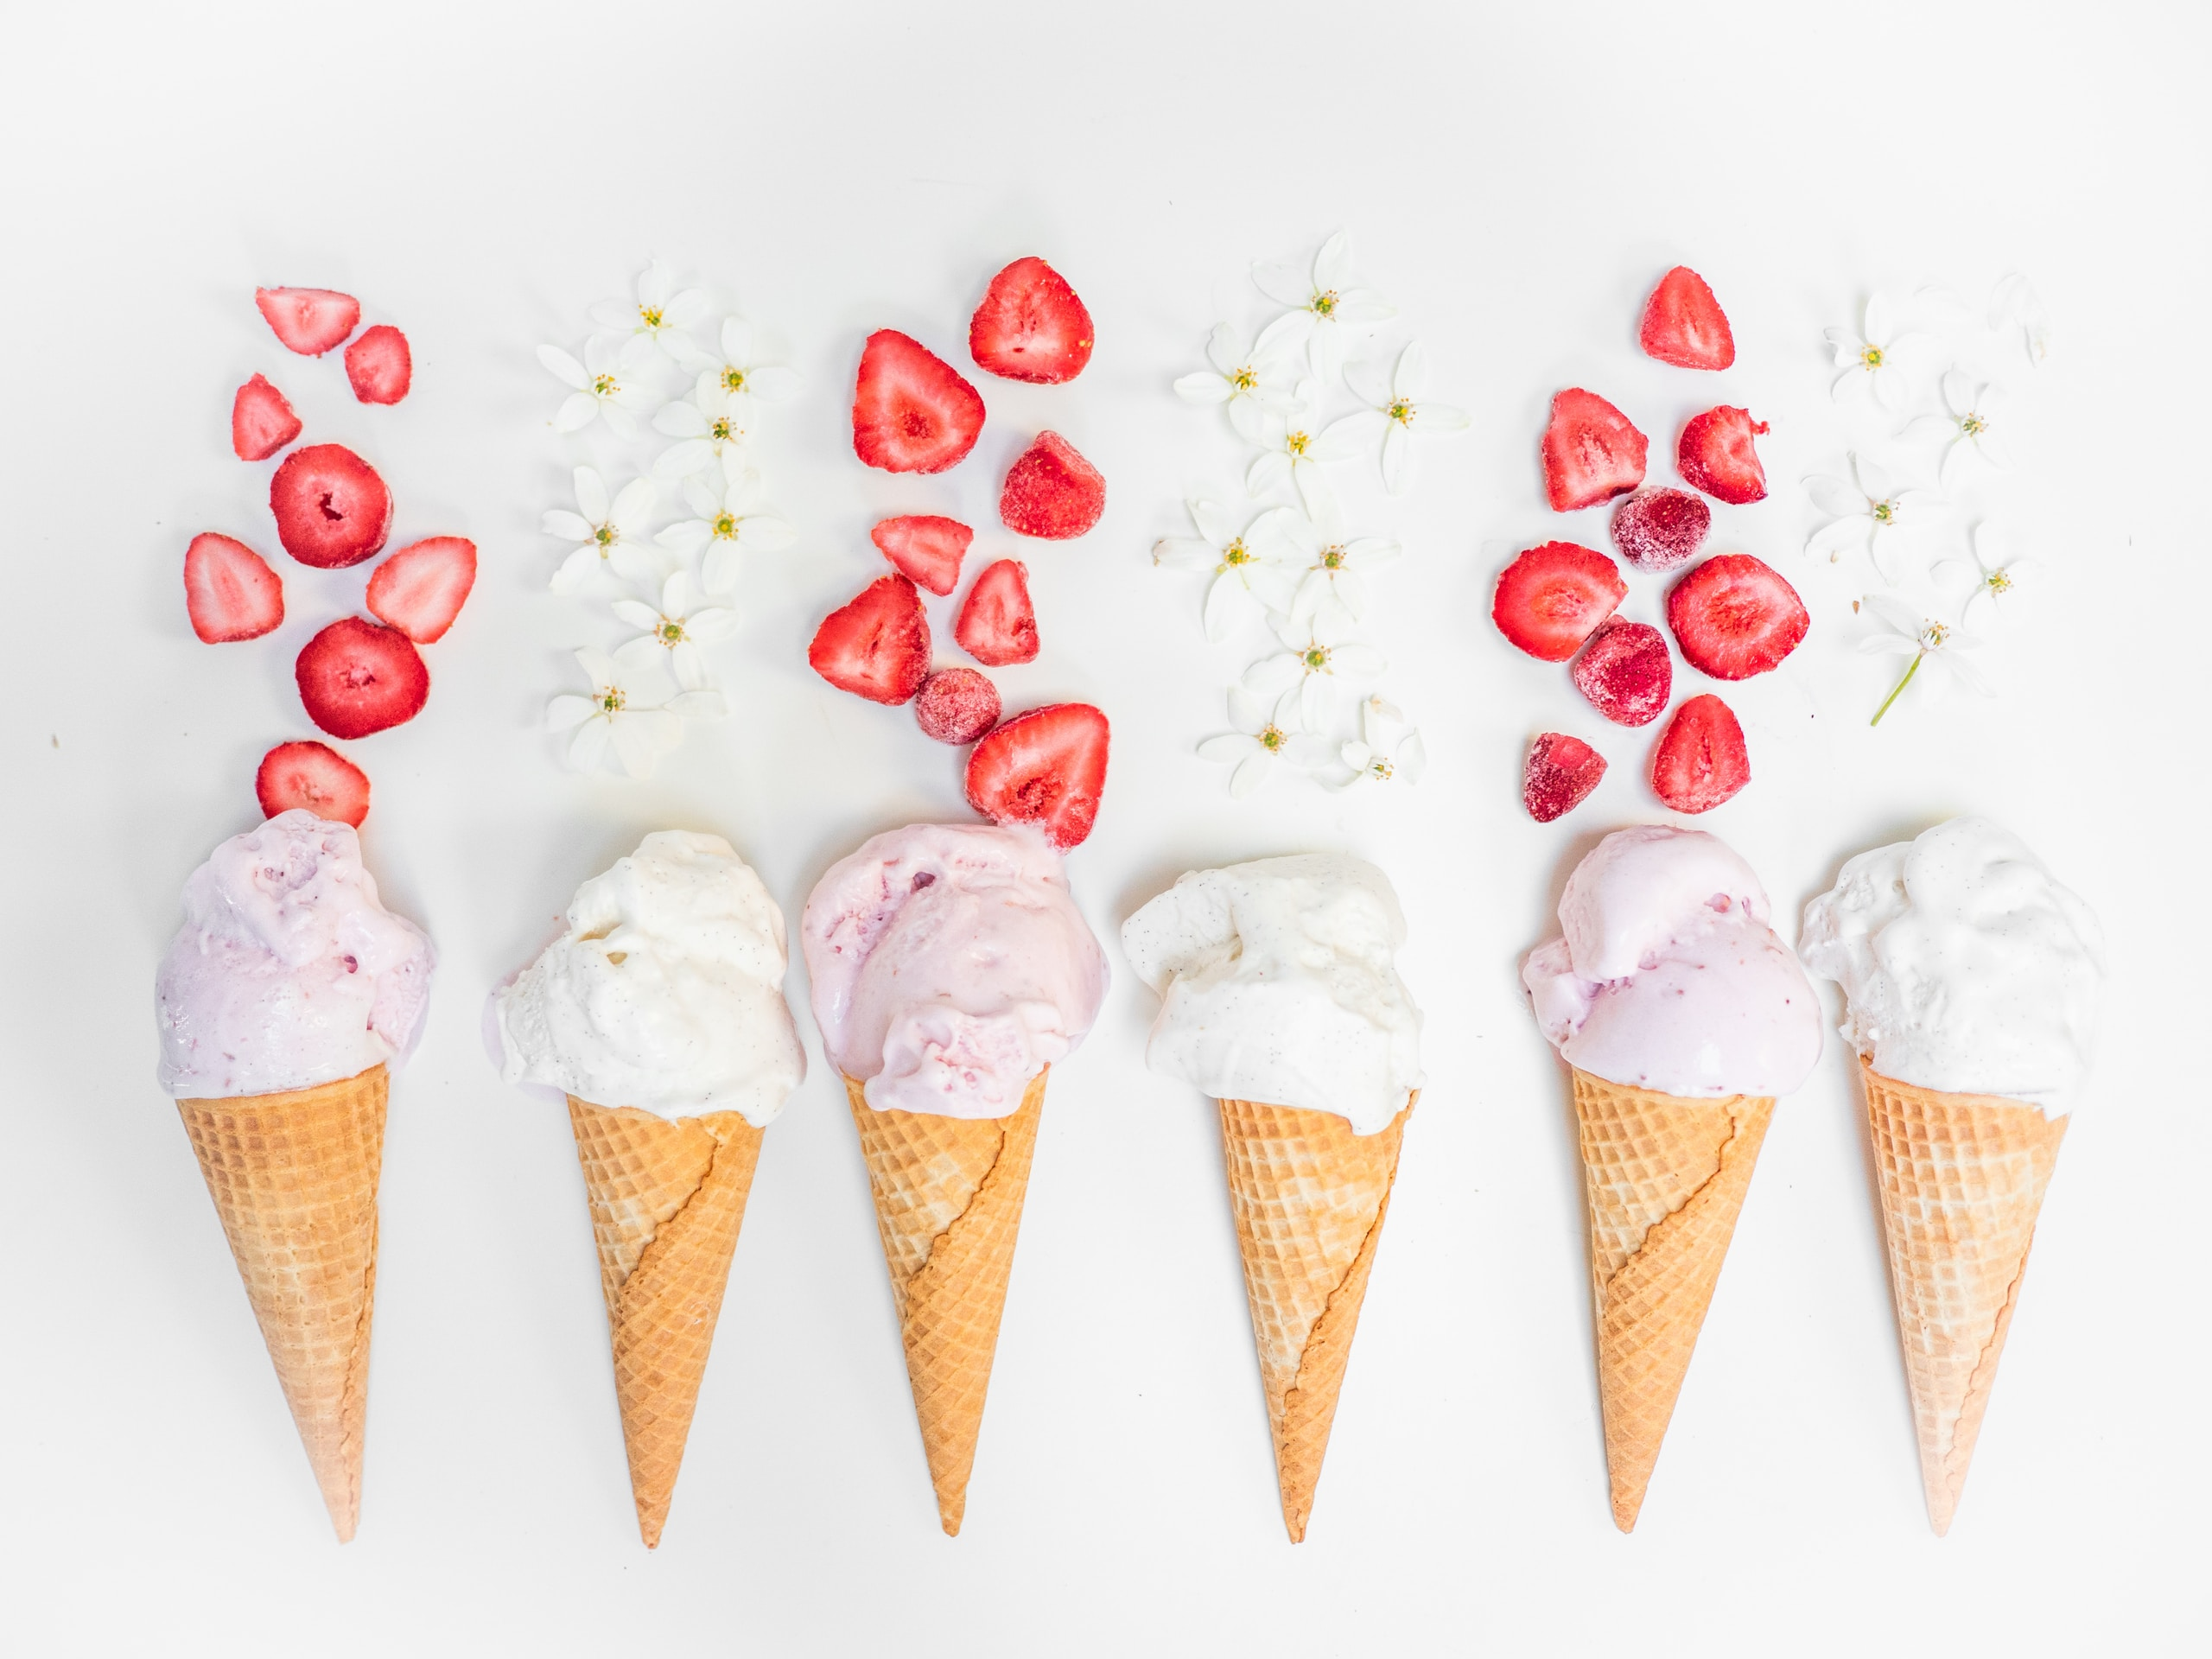 ice cream with strawberry on cone